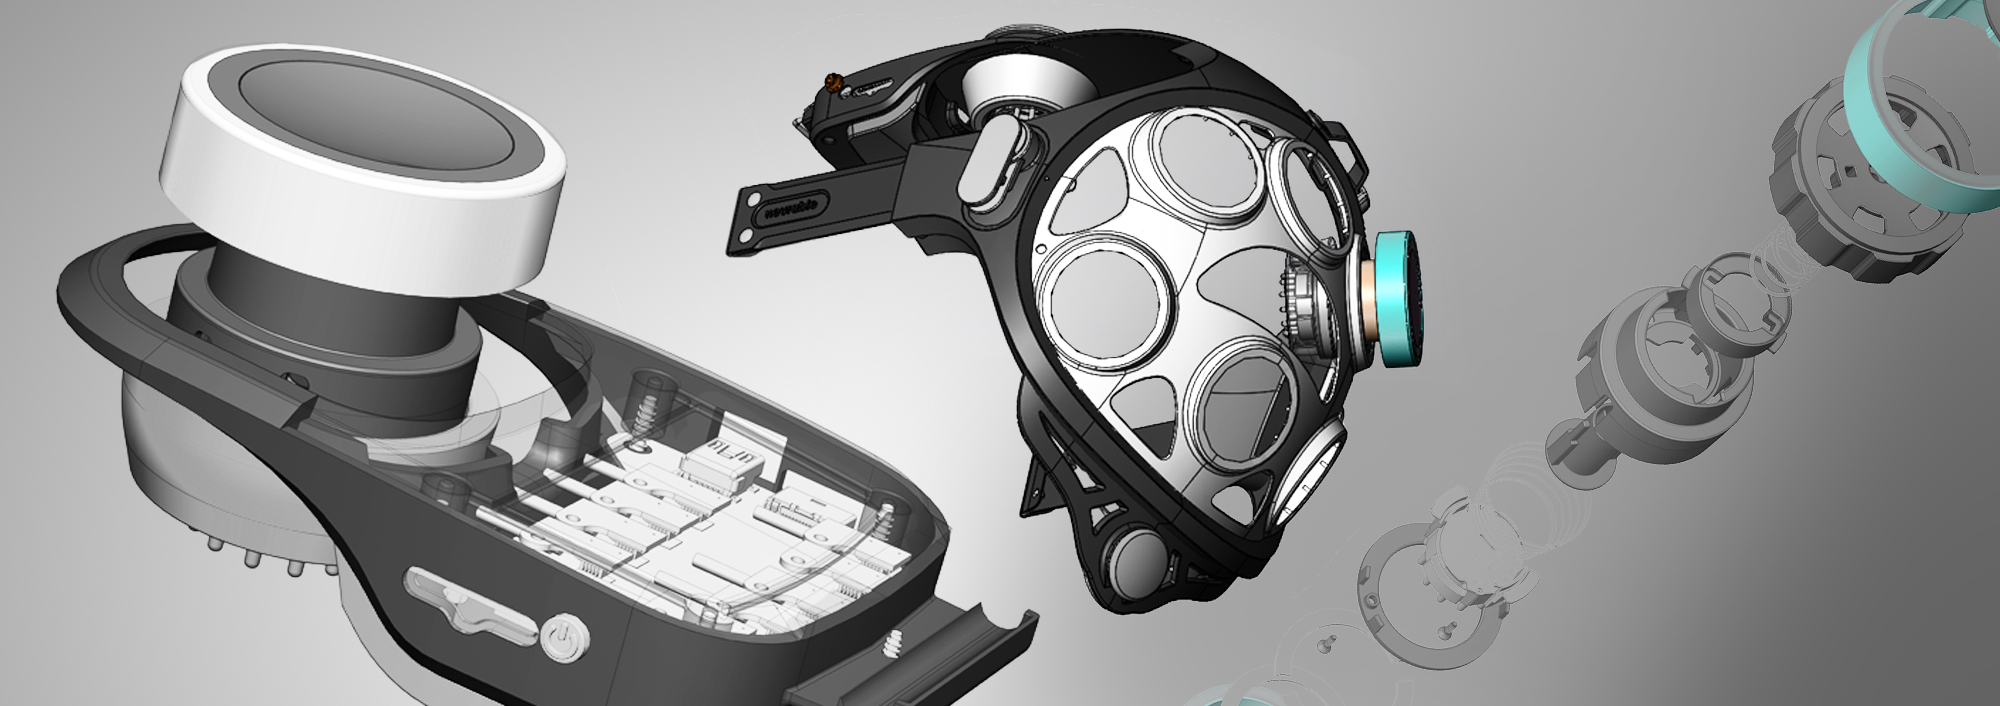 Neurable_headset_05a